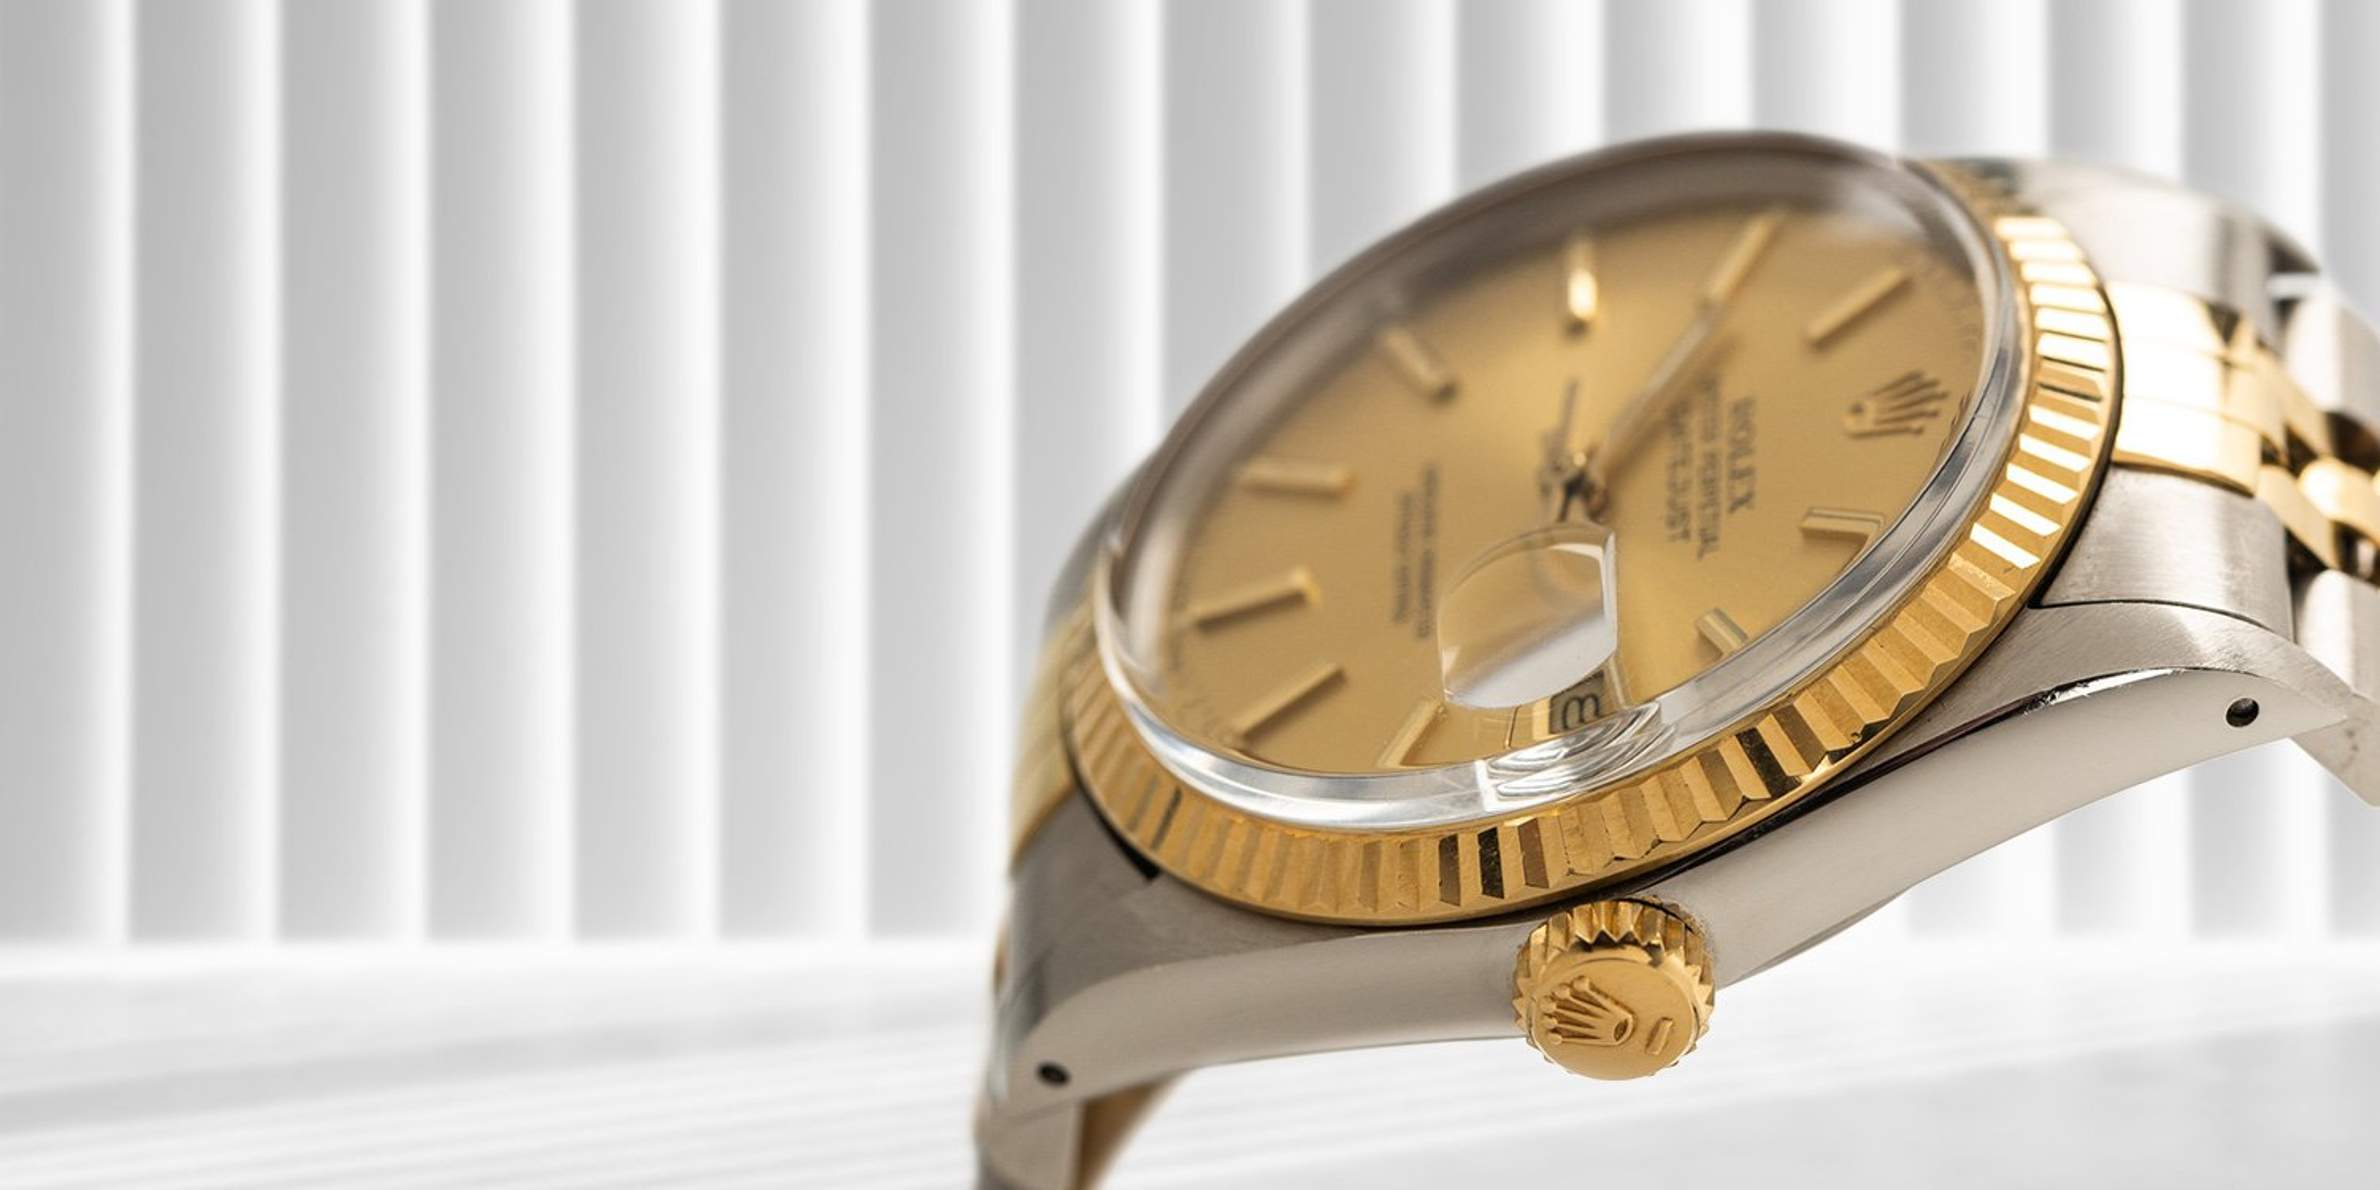 Top Watches in Movies: Classy Timepieces That Hollywood Loves